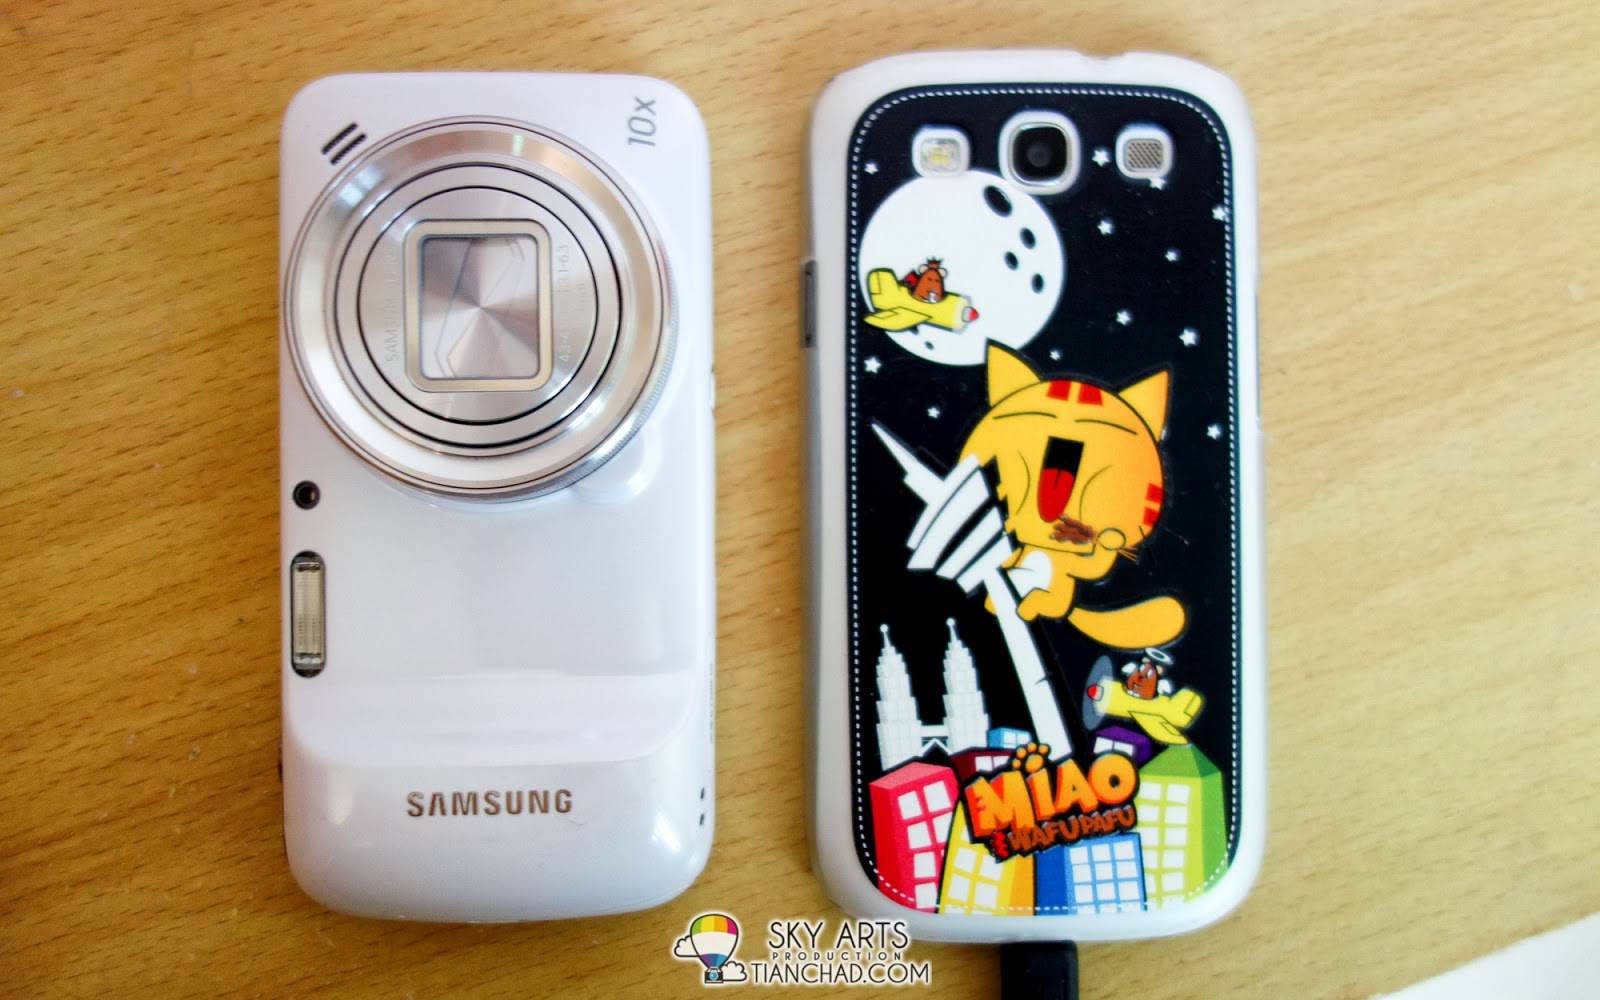 Back view of Samsung GALAXY S4 Zoom vs GALAXY S3